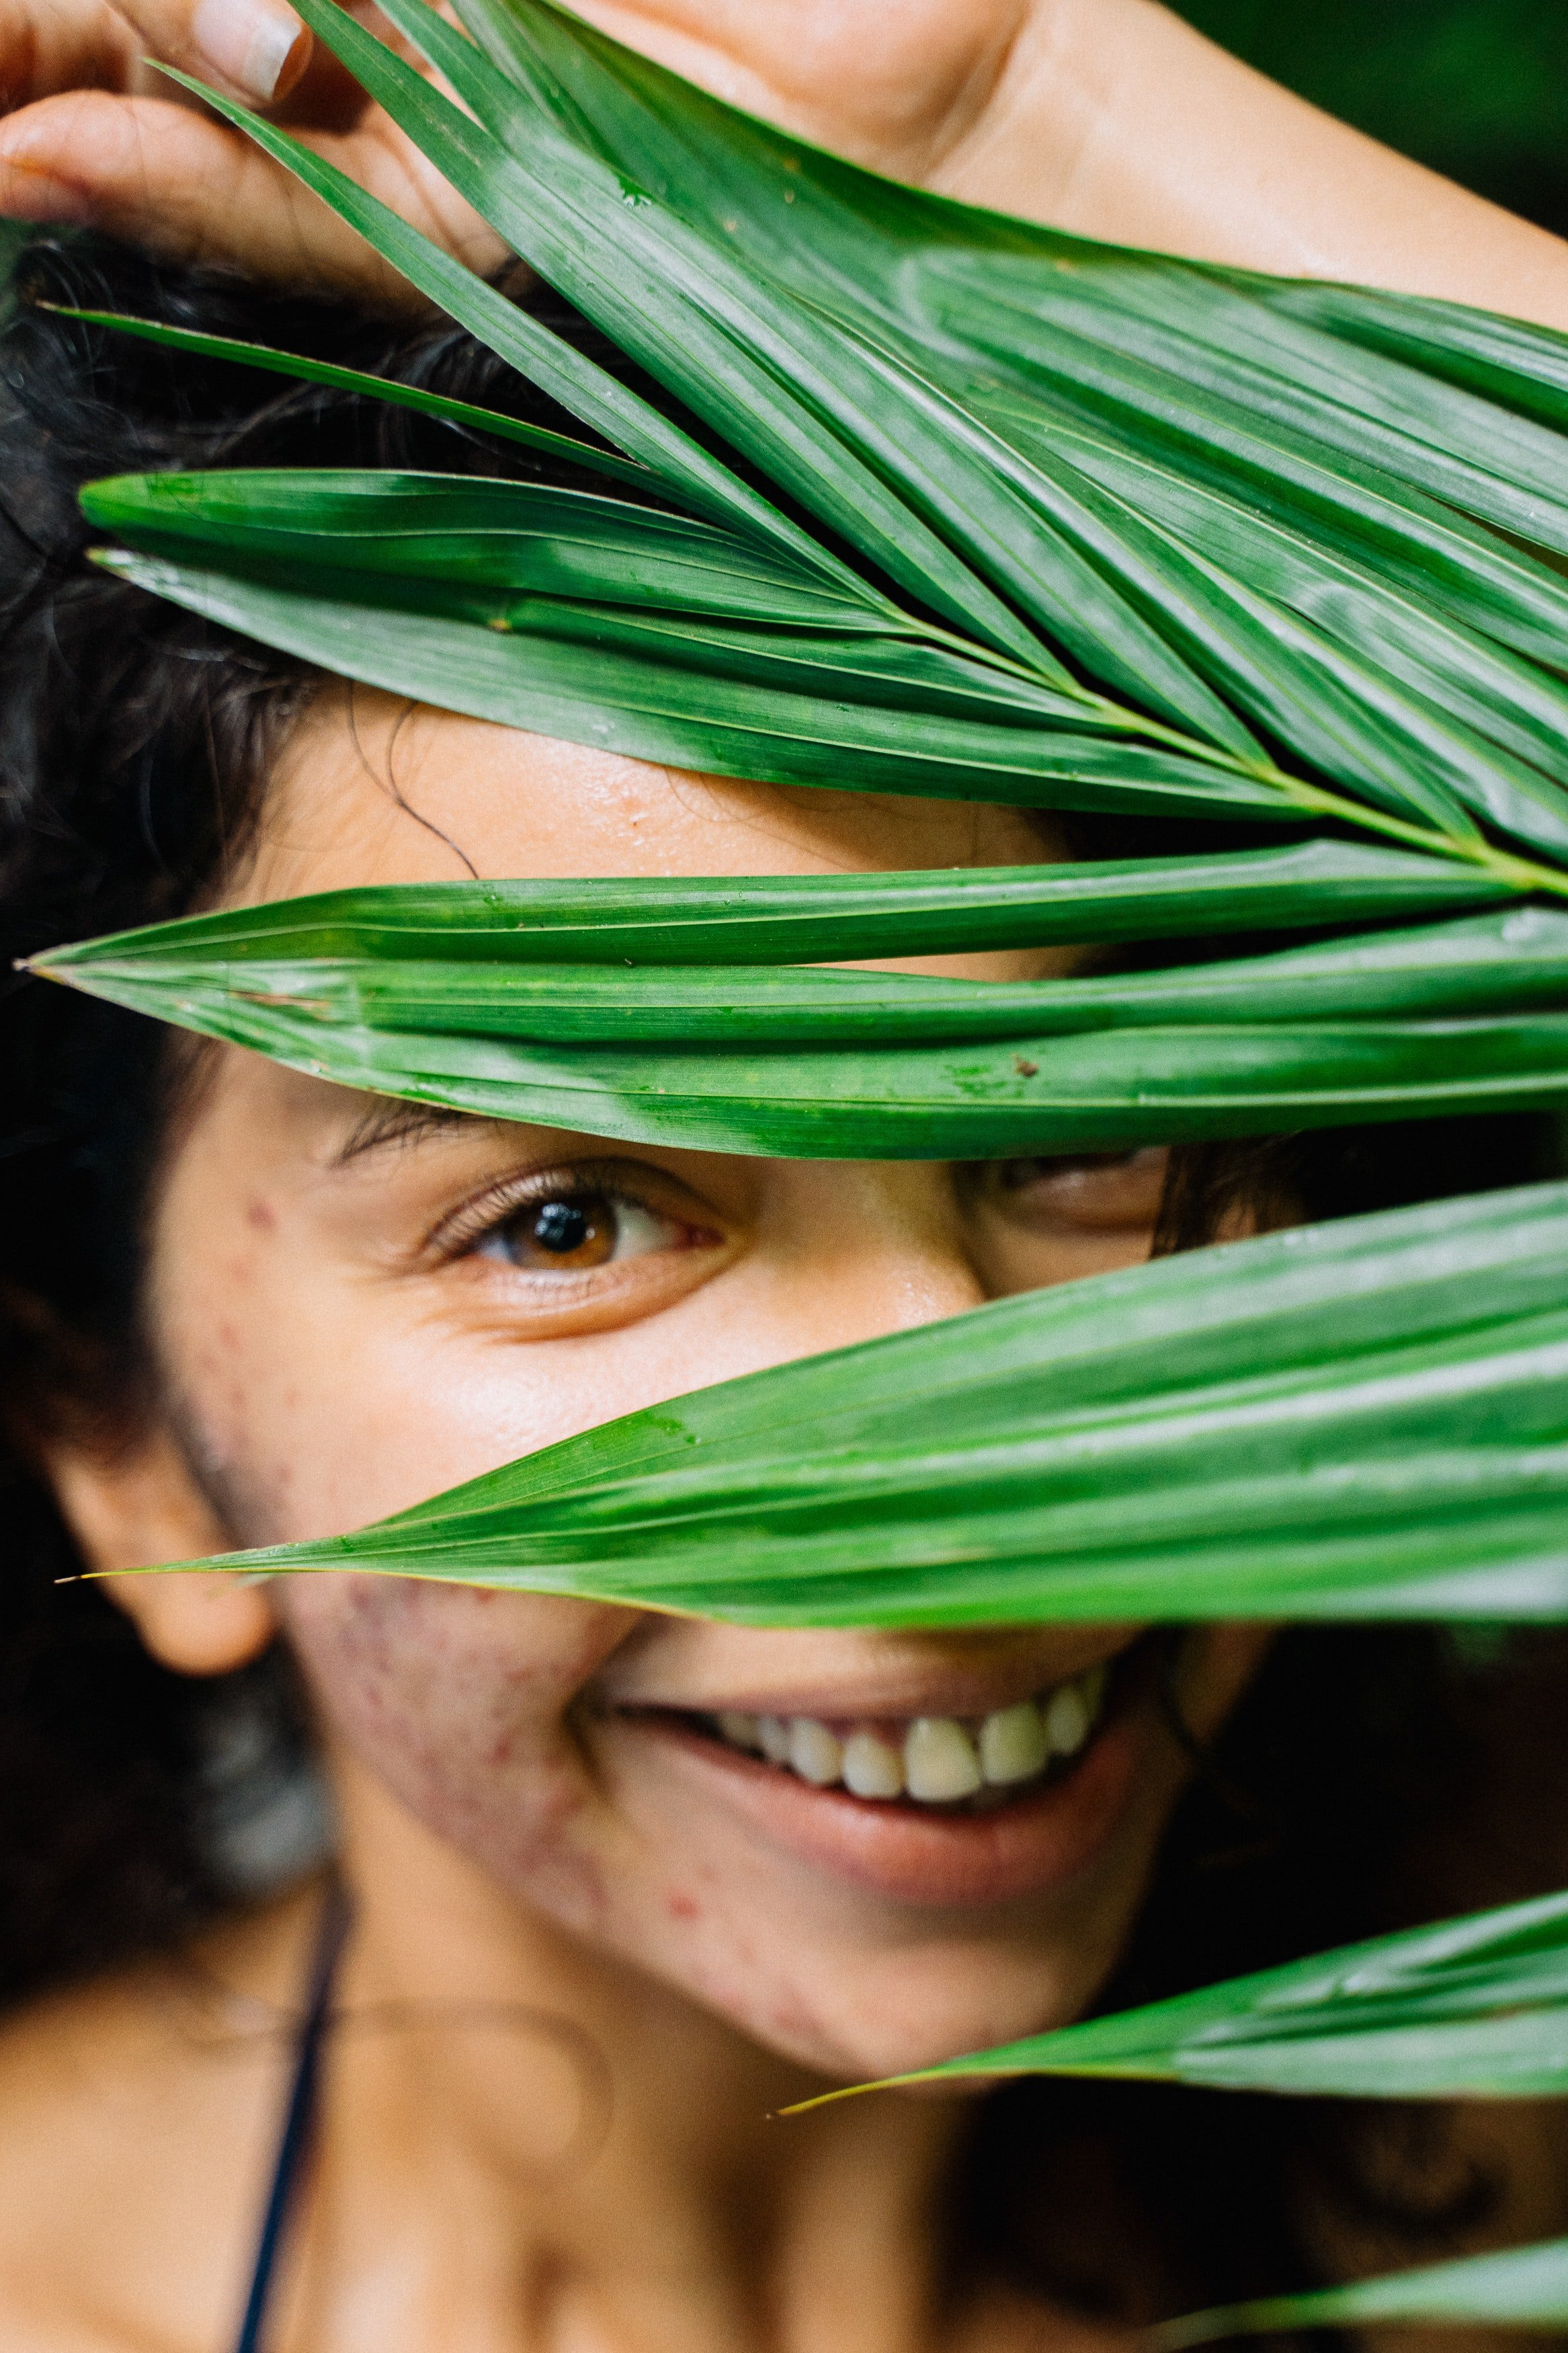 Pictured - A woman with skin irritation grinning behind green leaves. | Source: Pexels